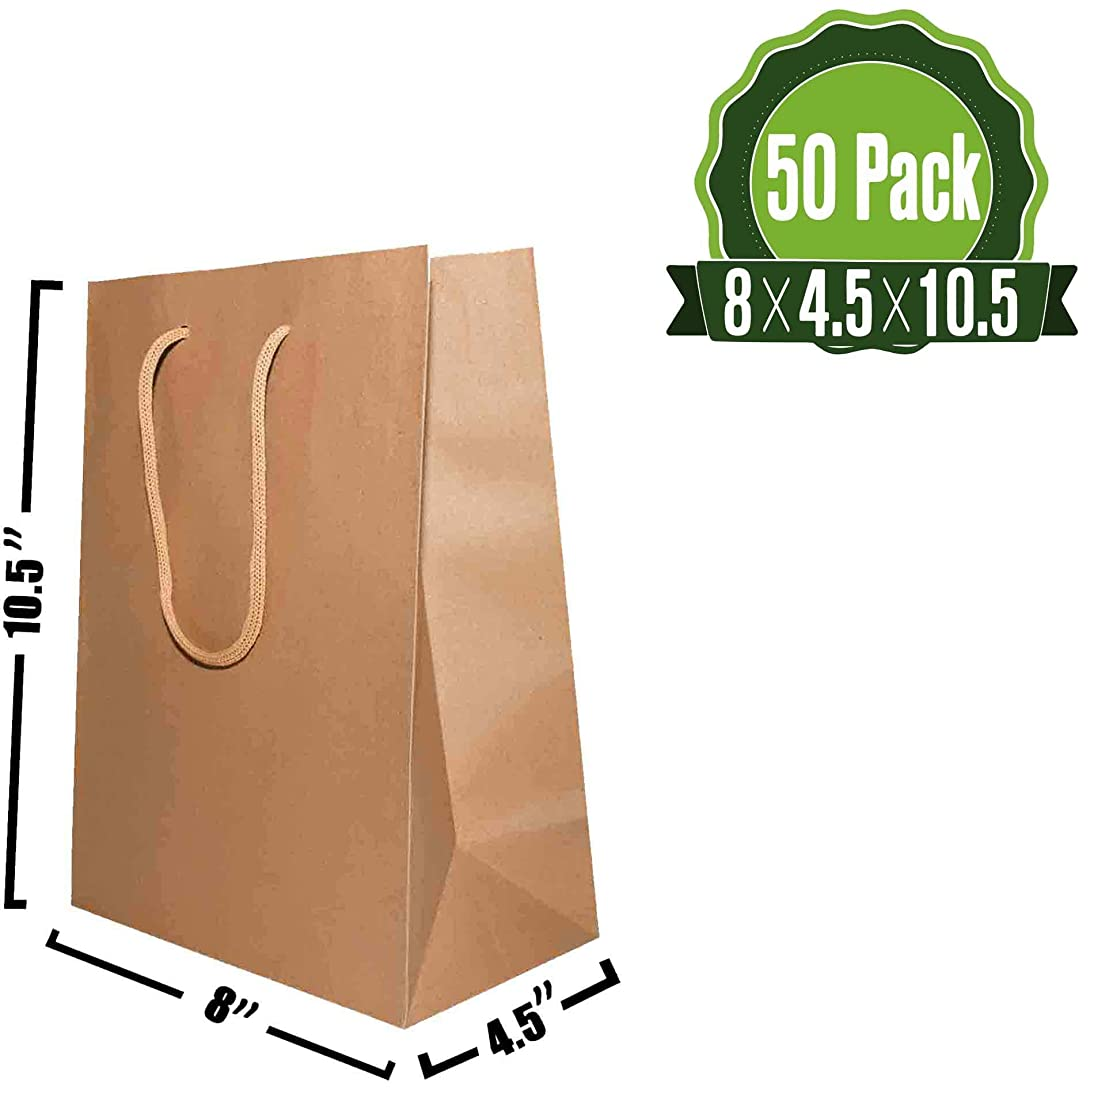 Kraft Paper Gift Bags Bulk with Rope Handles 50Pc [ Ideal for Shopping, Packaging, Retail, Party, Craft, Gifts, Wedding, Recycled, Business, Goody and Merchandise Bag] (100 Bags) (Brown)